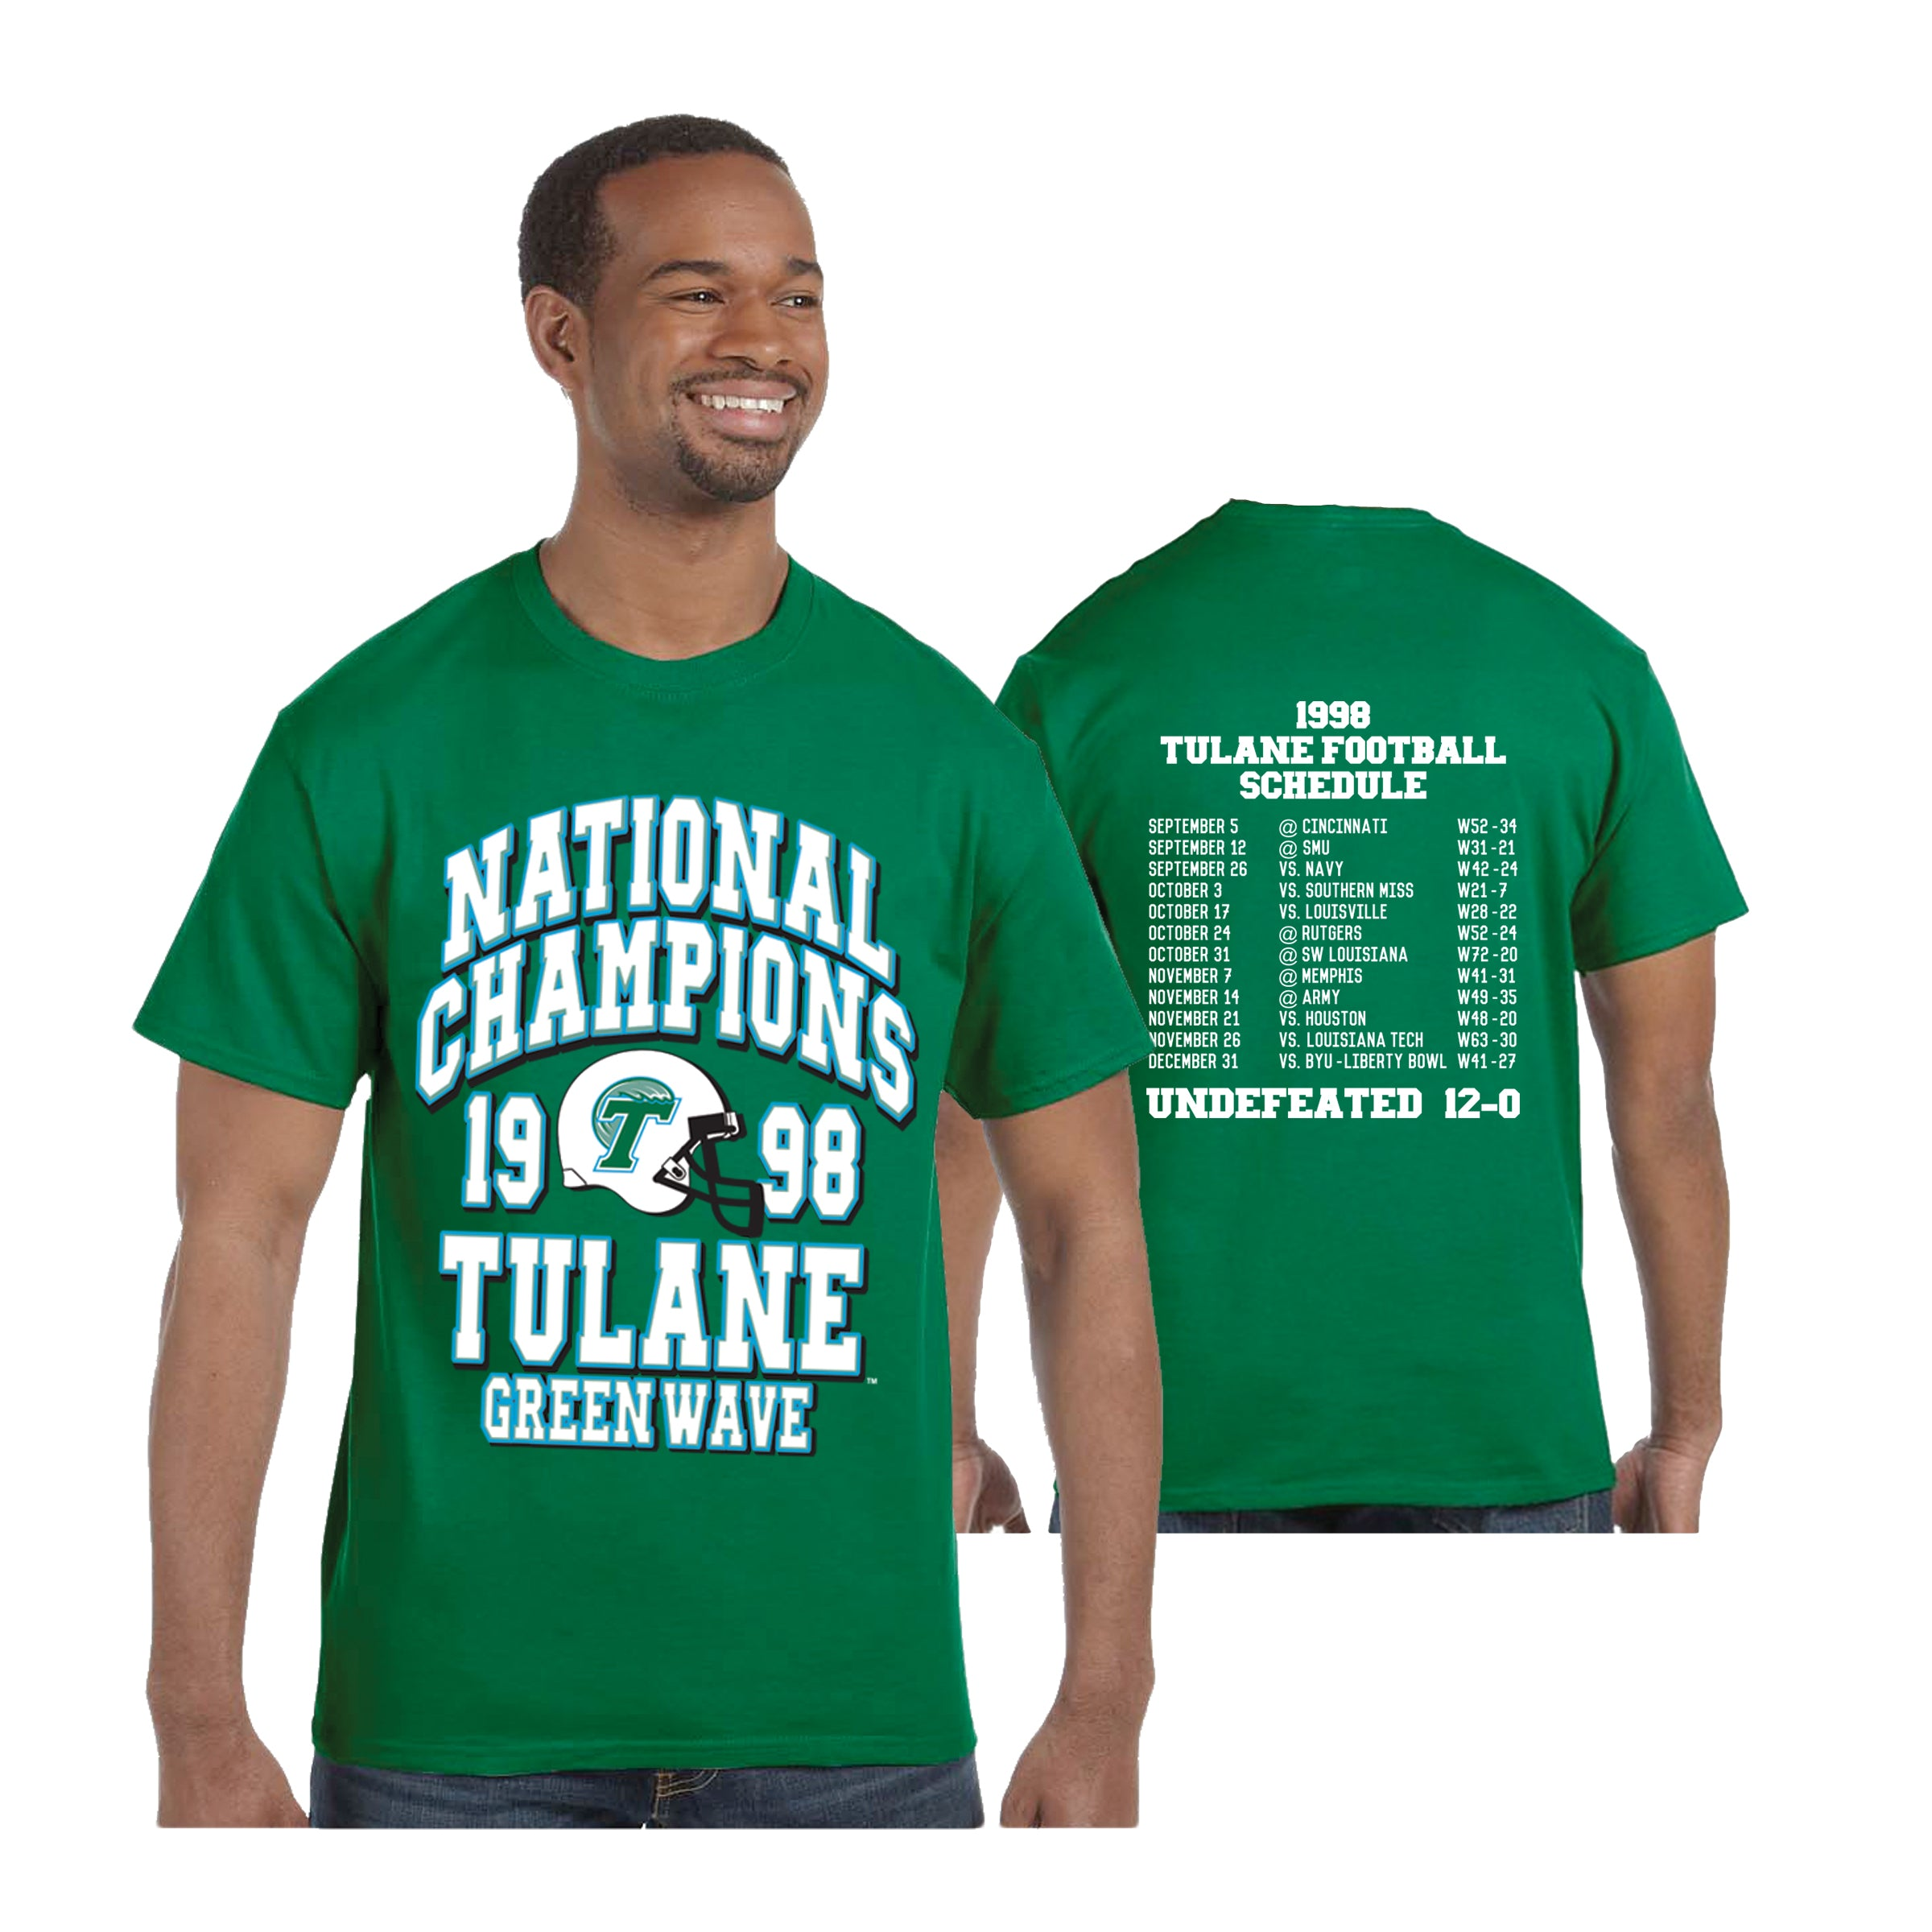 NATIONAL_CHAMPS_shirt.jpg?v=1515173318